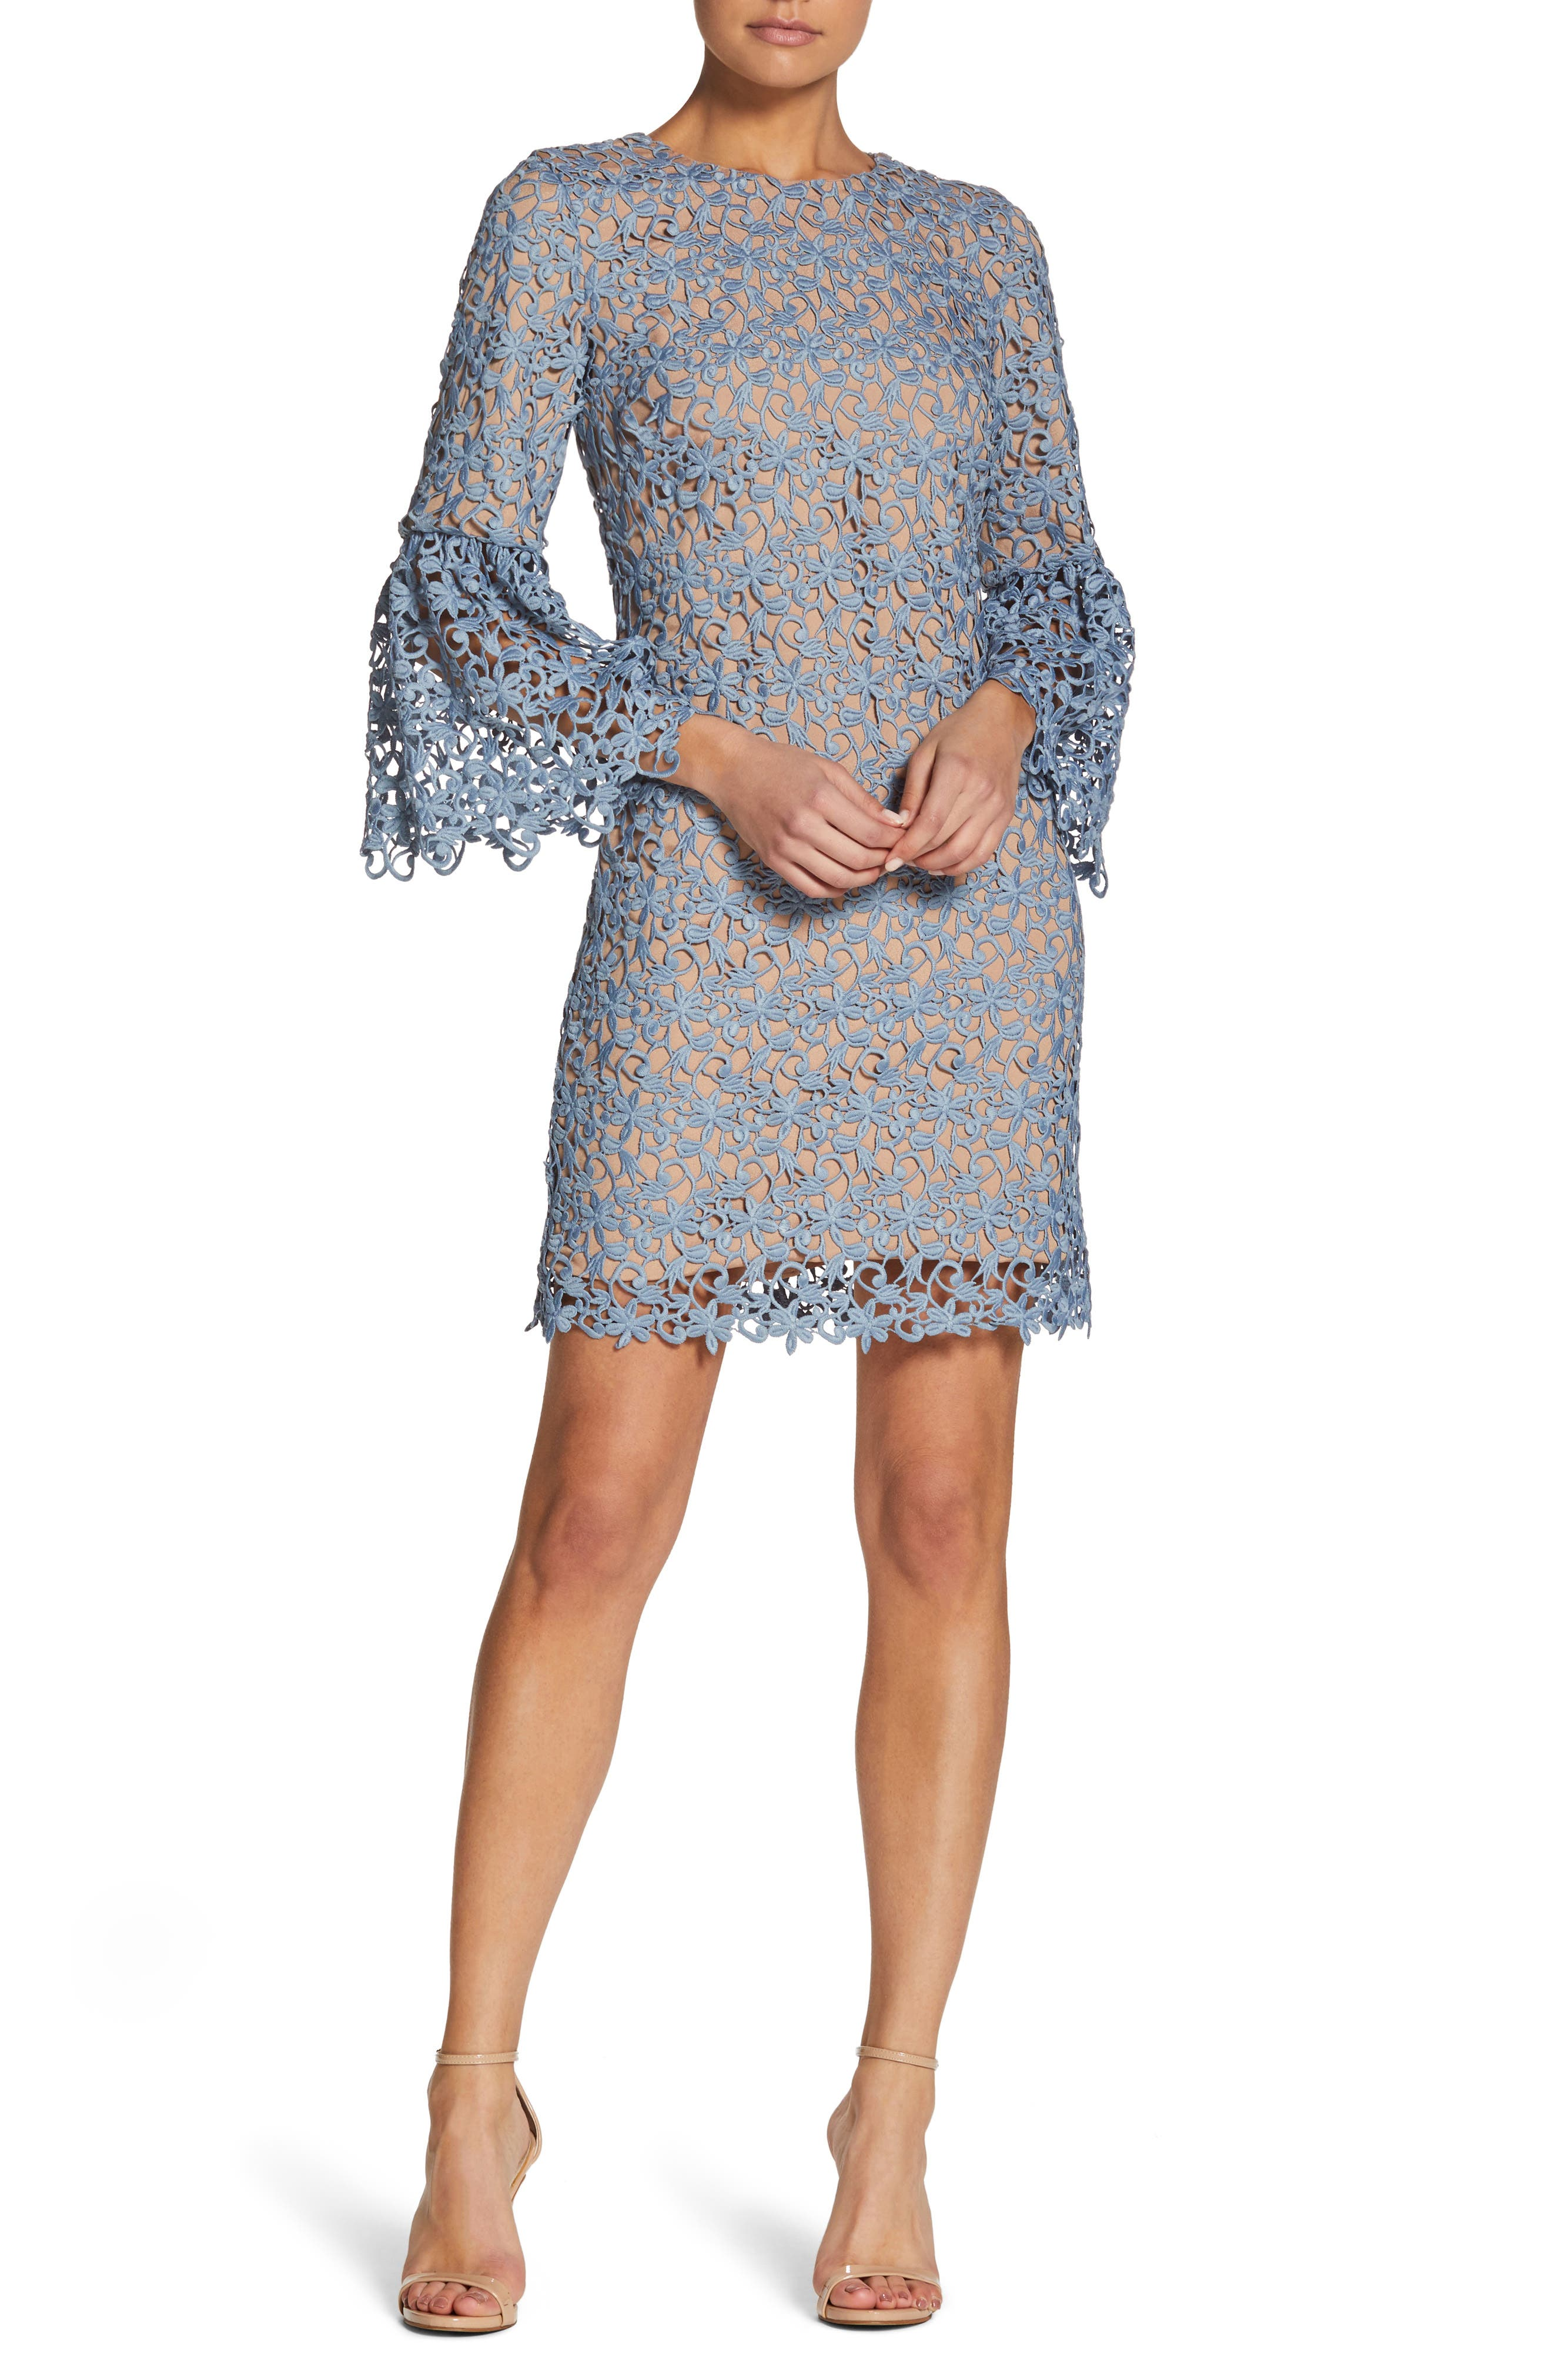 Paige Crochet Shift Dress,                         Main,                         color, Mineral Blue/ Nude